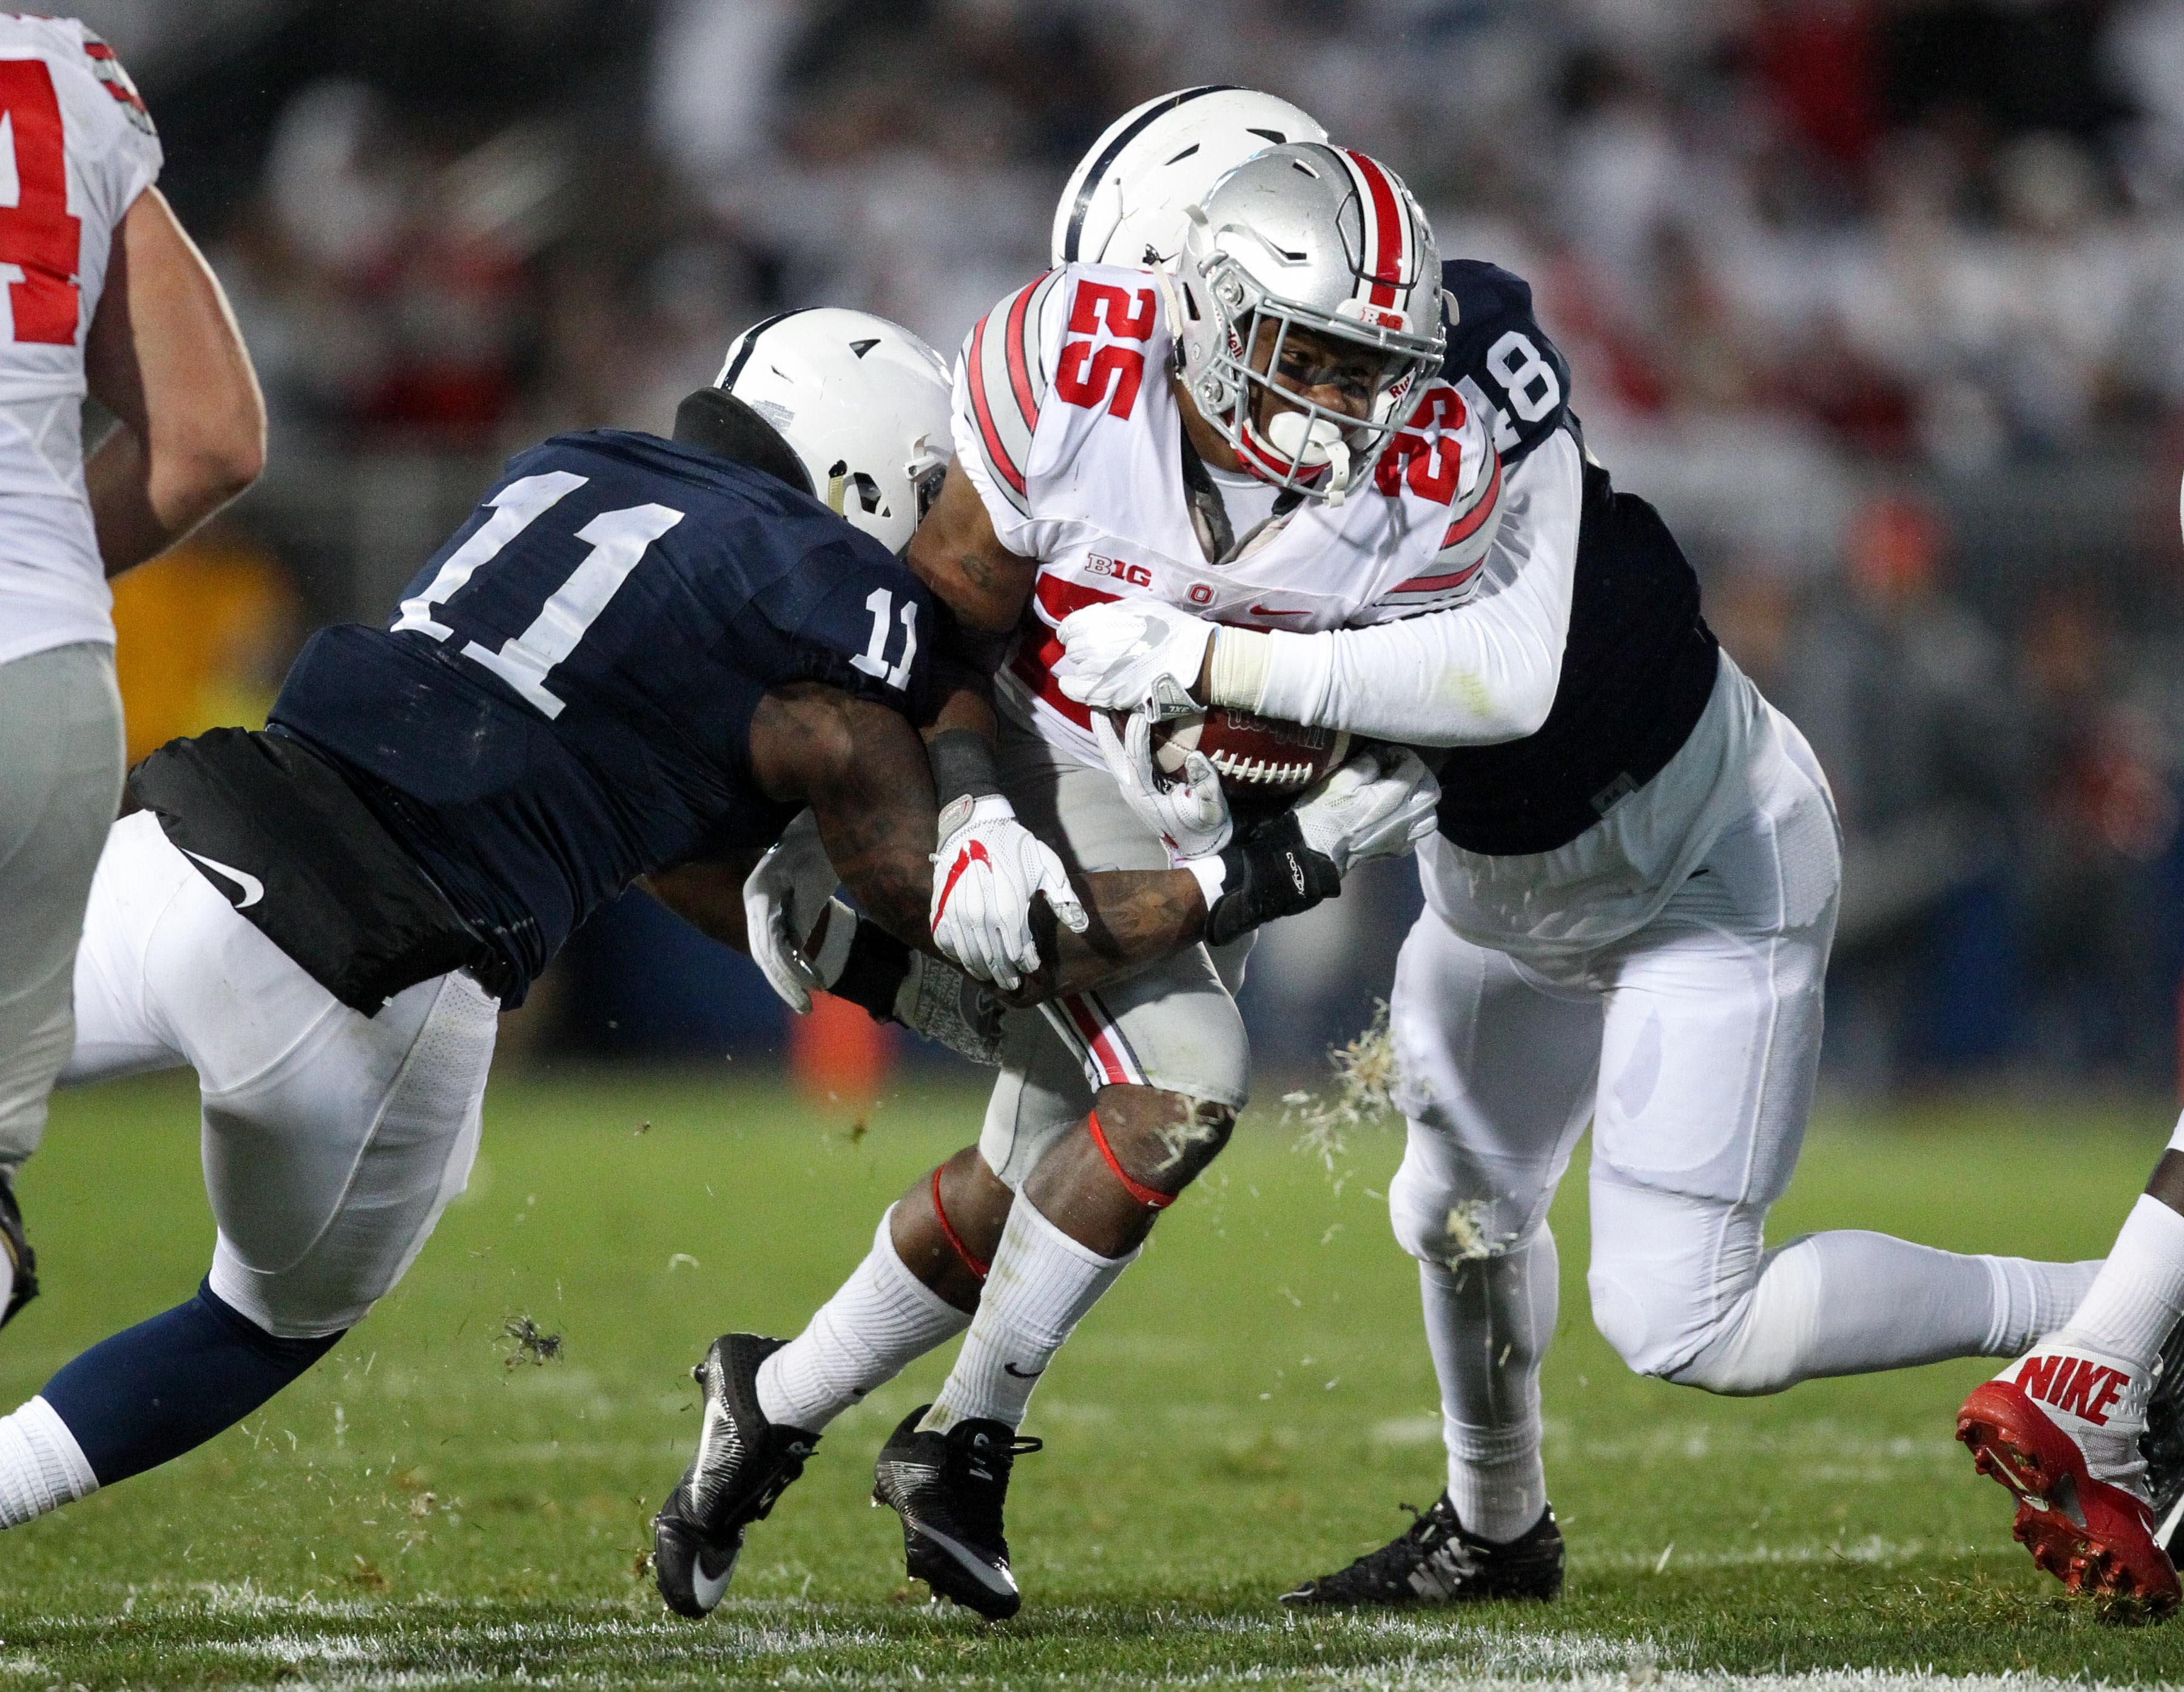 Ohio State and Penn State have now played 3 straight instant classics